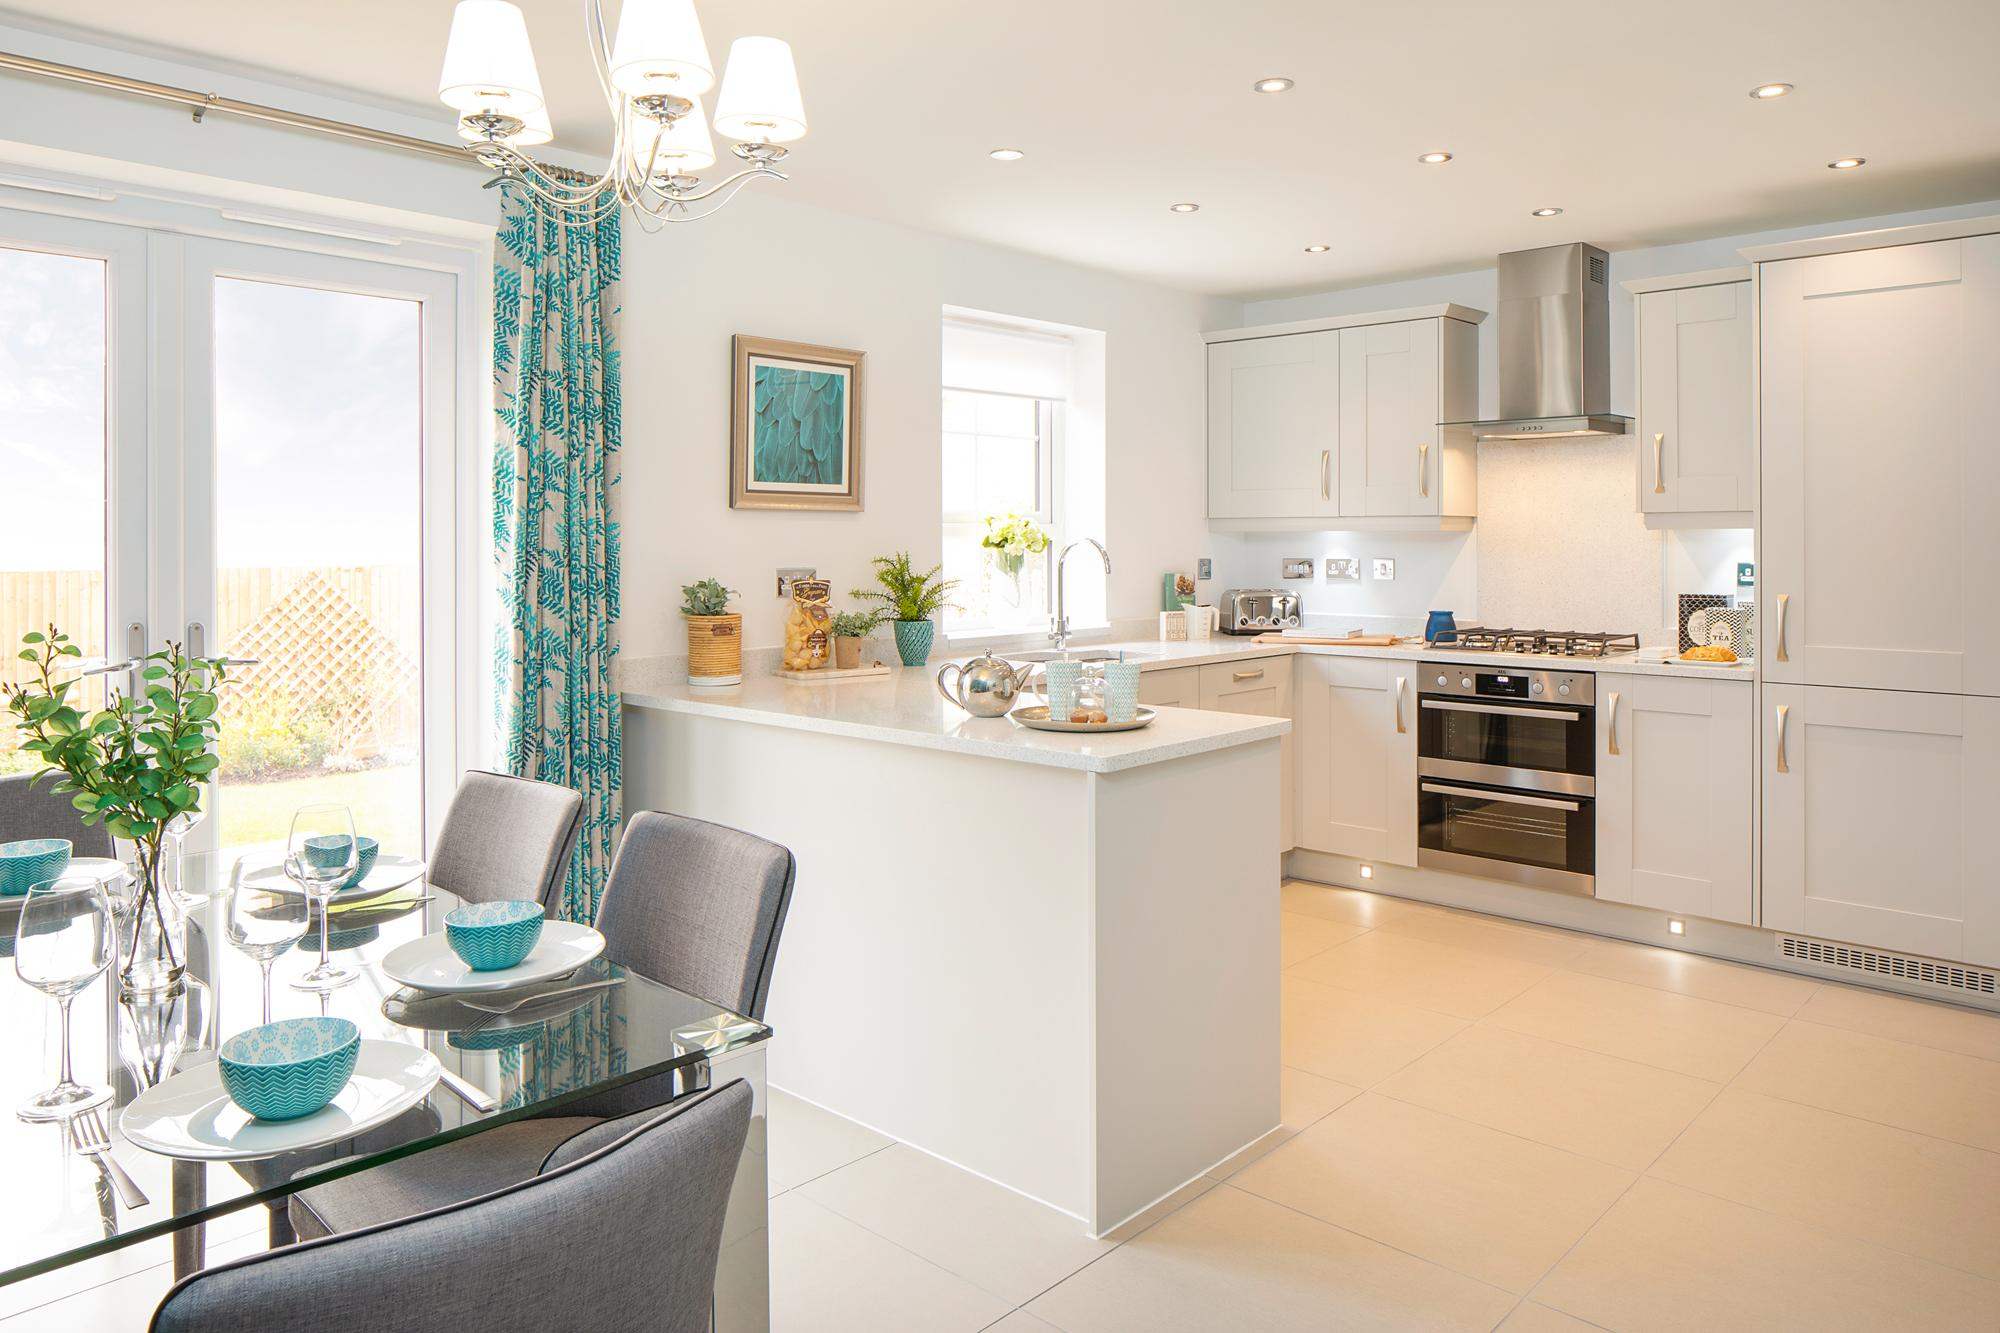 New Homes Whitchurch New Homes For Sale Whitchurch Bristol